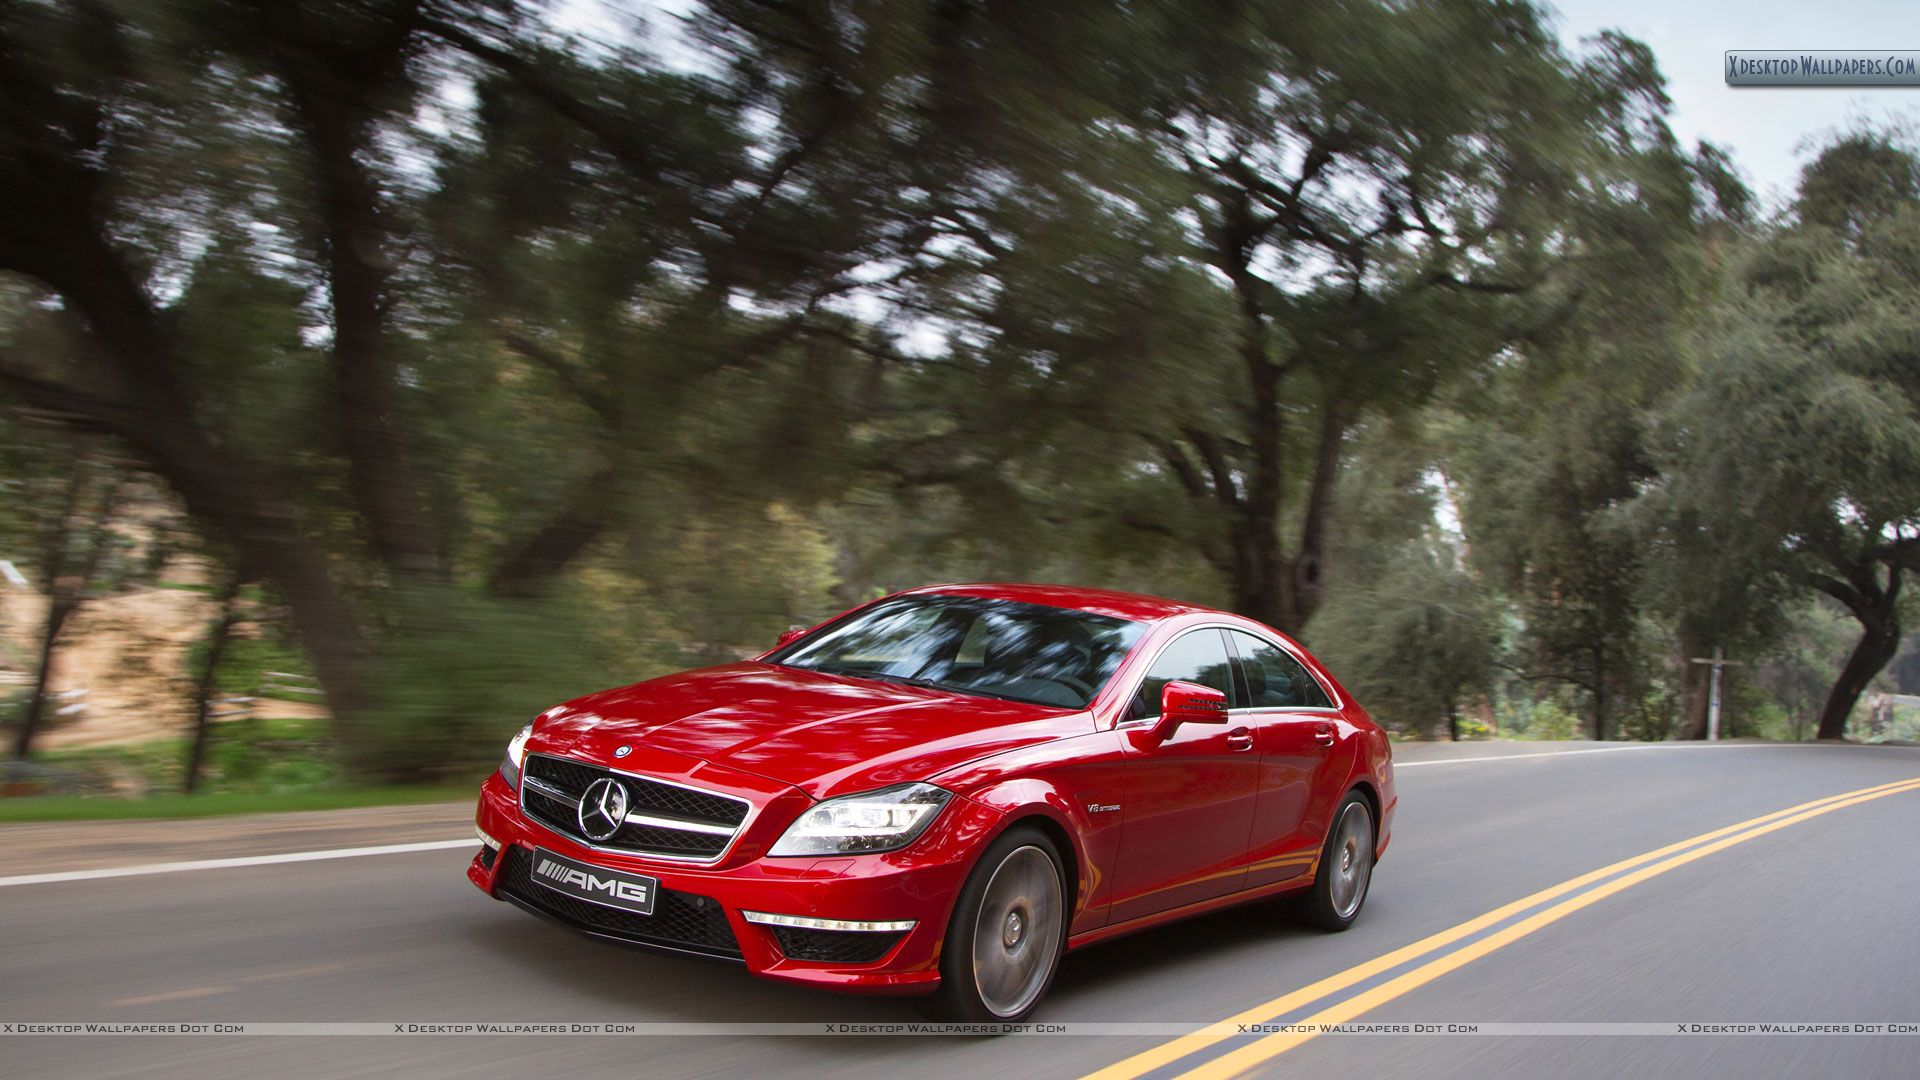 mercedes pictures us benz information amg wallpaper specs version